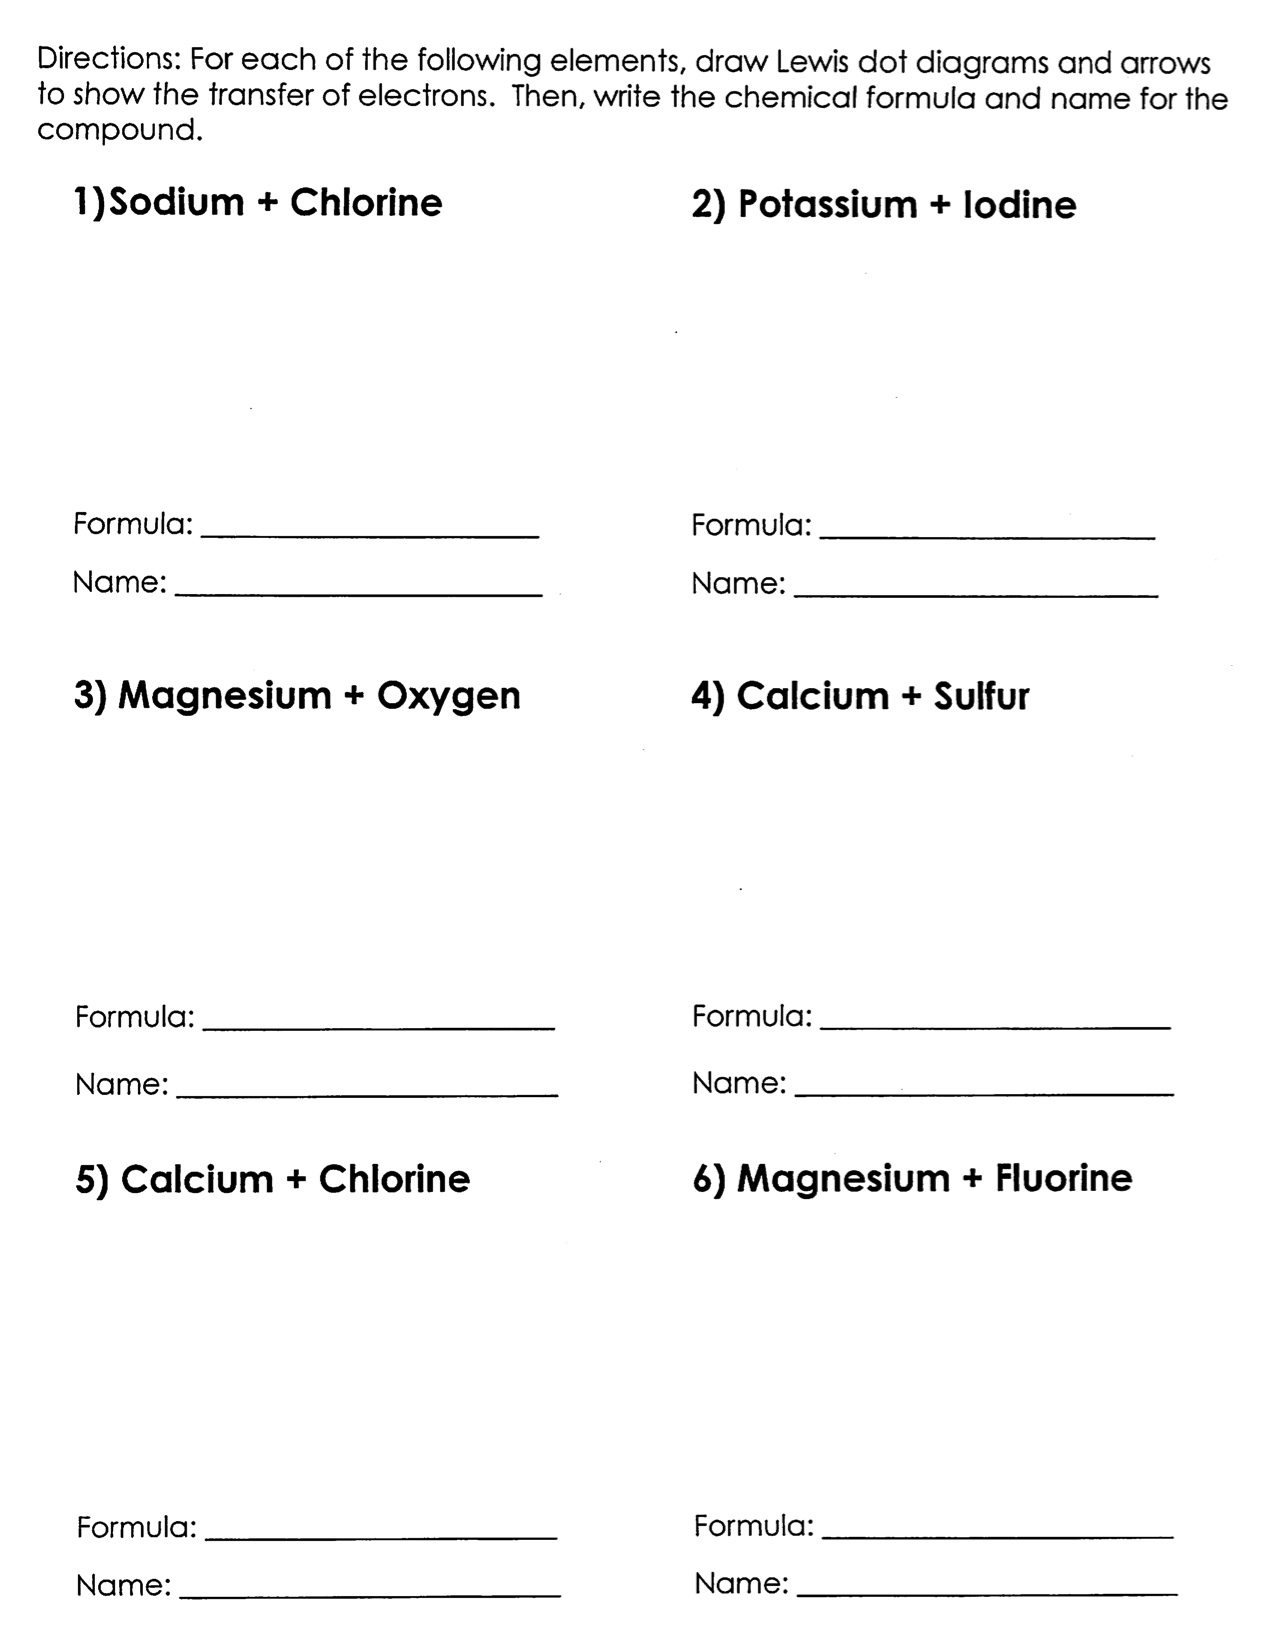 Ionic Bonds Worksheet And Answers: bonding and chemical formulas worksheet answers   laveyla com,